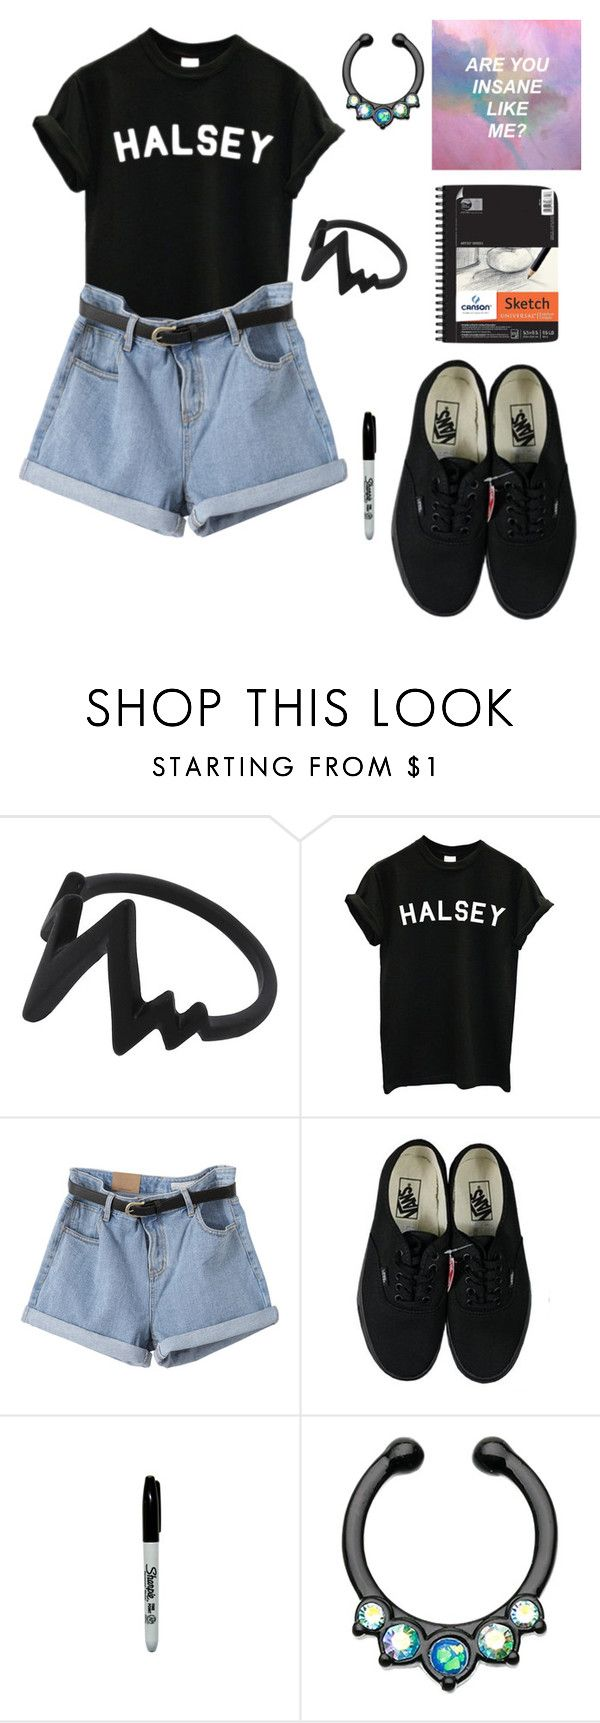 """""""(Are you insane like me?)"""" by coffeeismysoul ❤ liked on Polyvore featuring Vans and American Apparel"""